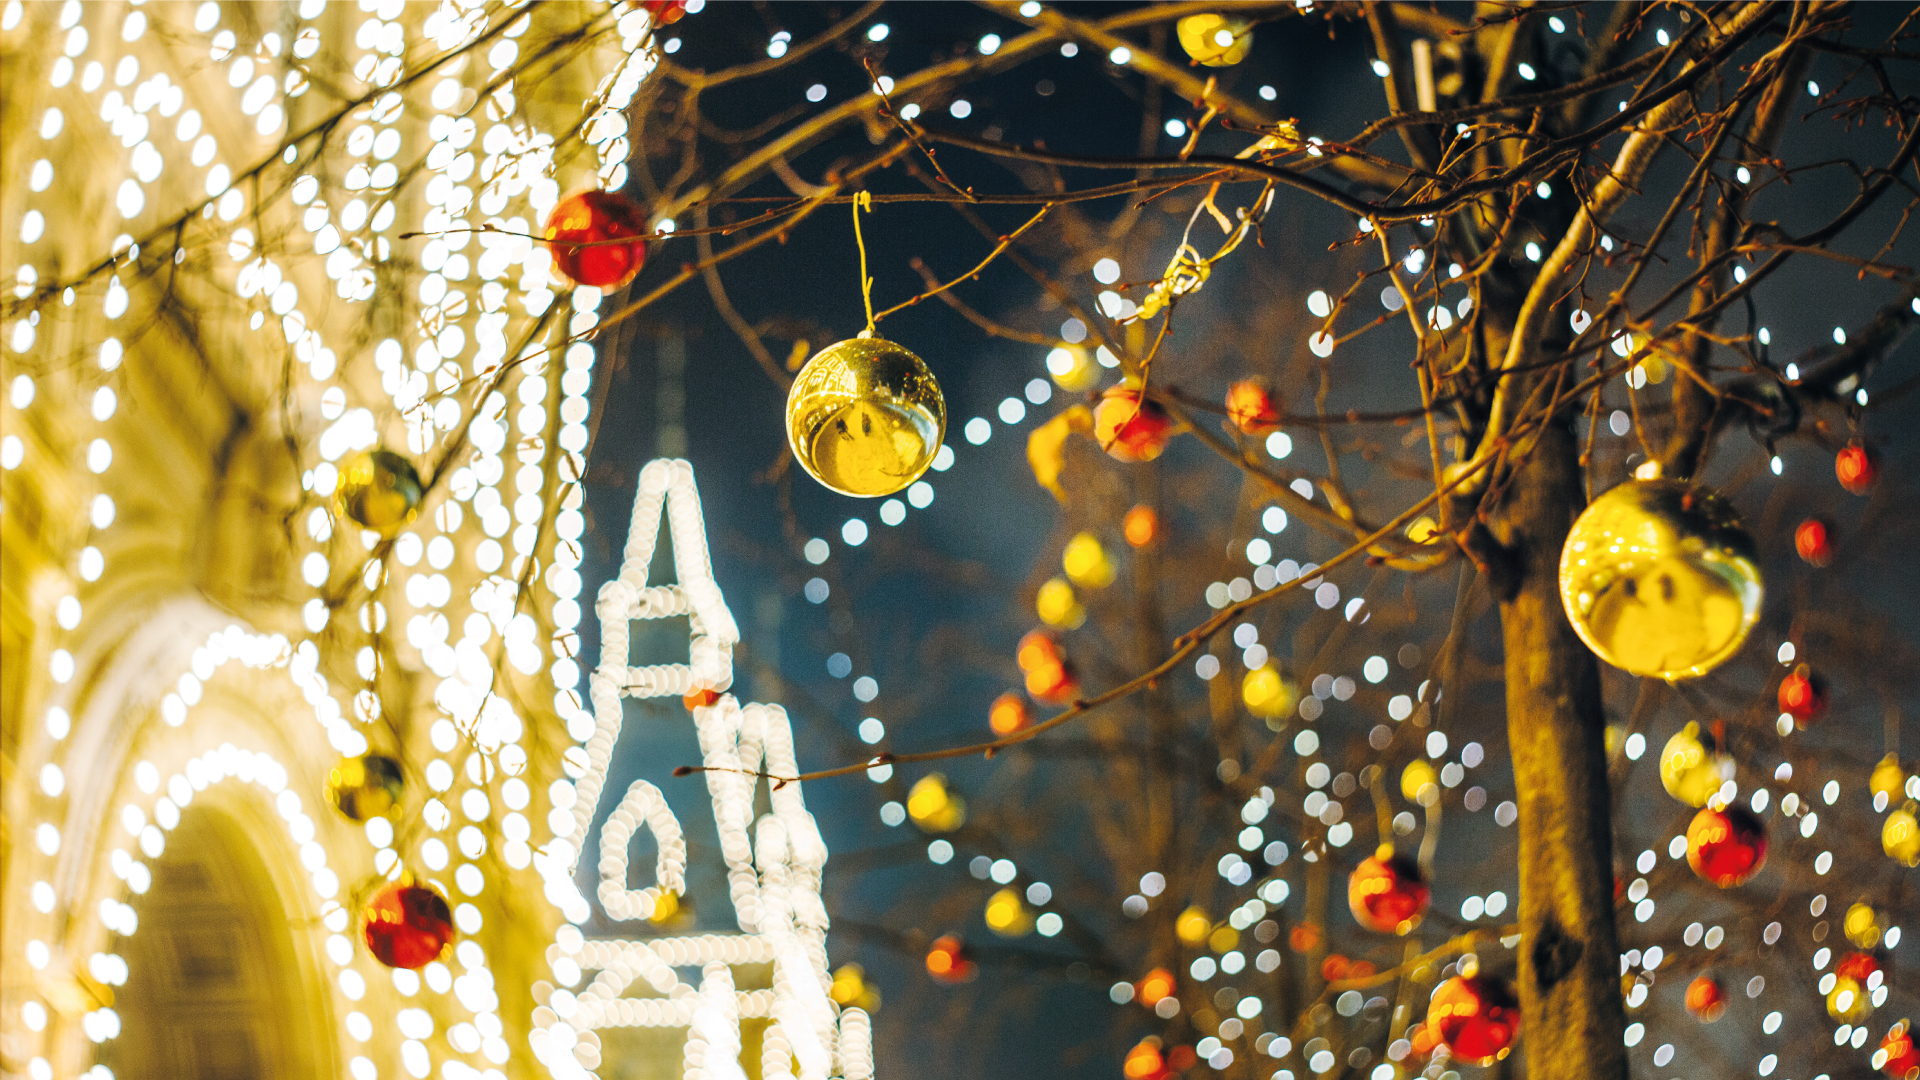 Strasbourg Christmas Market Festive Lights Holidays LocalBini local travel authentic market France Strasbourg